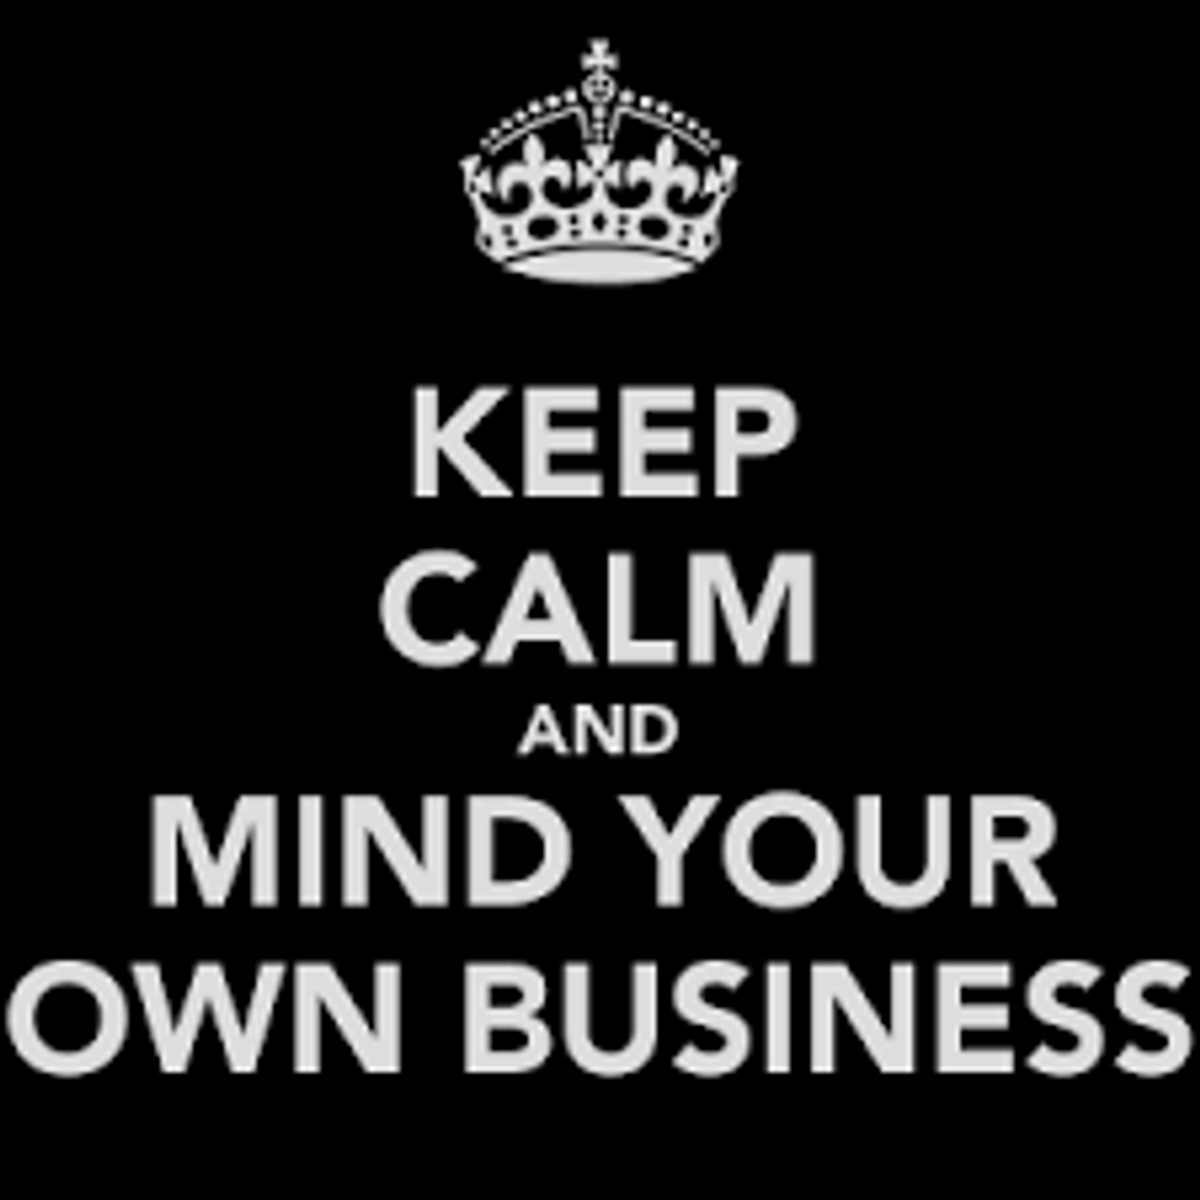 5 Reasons To Mind Your Own Business